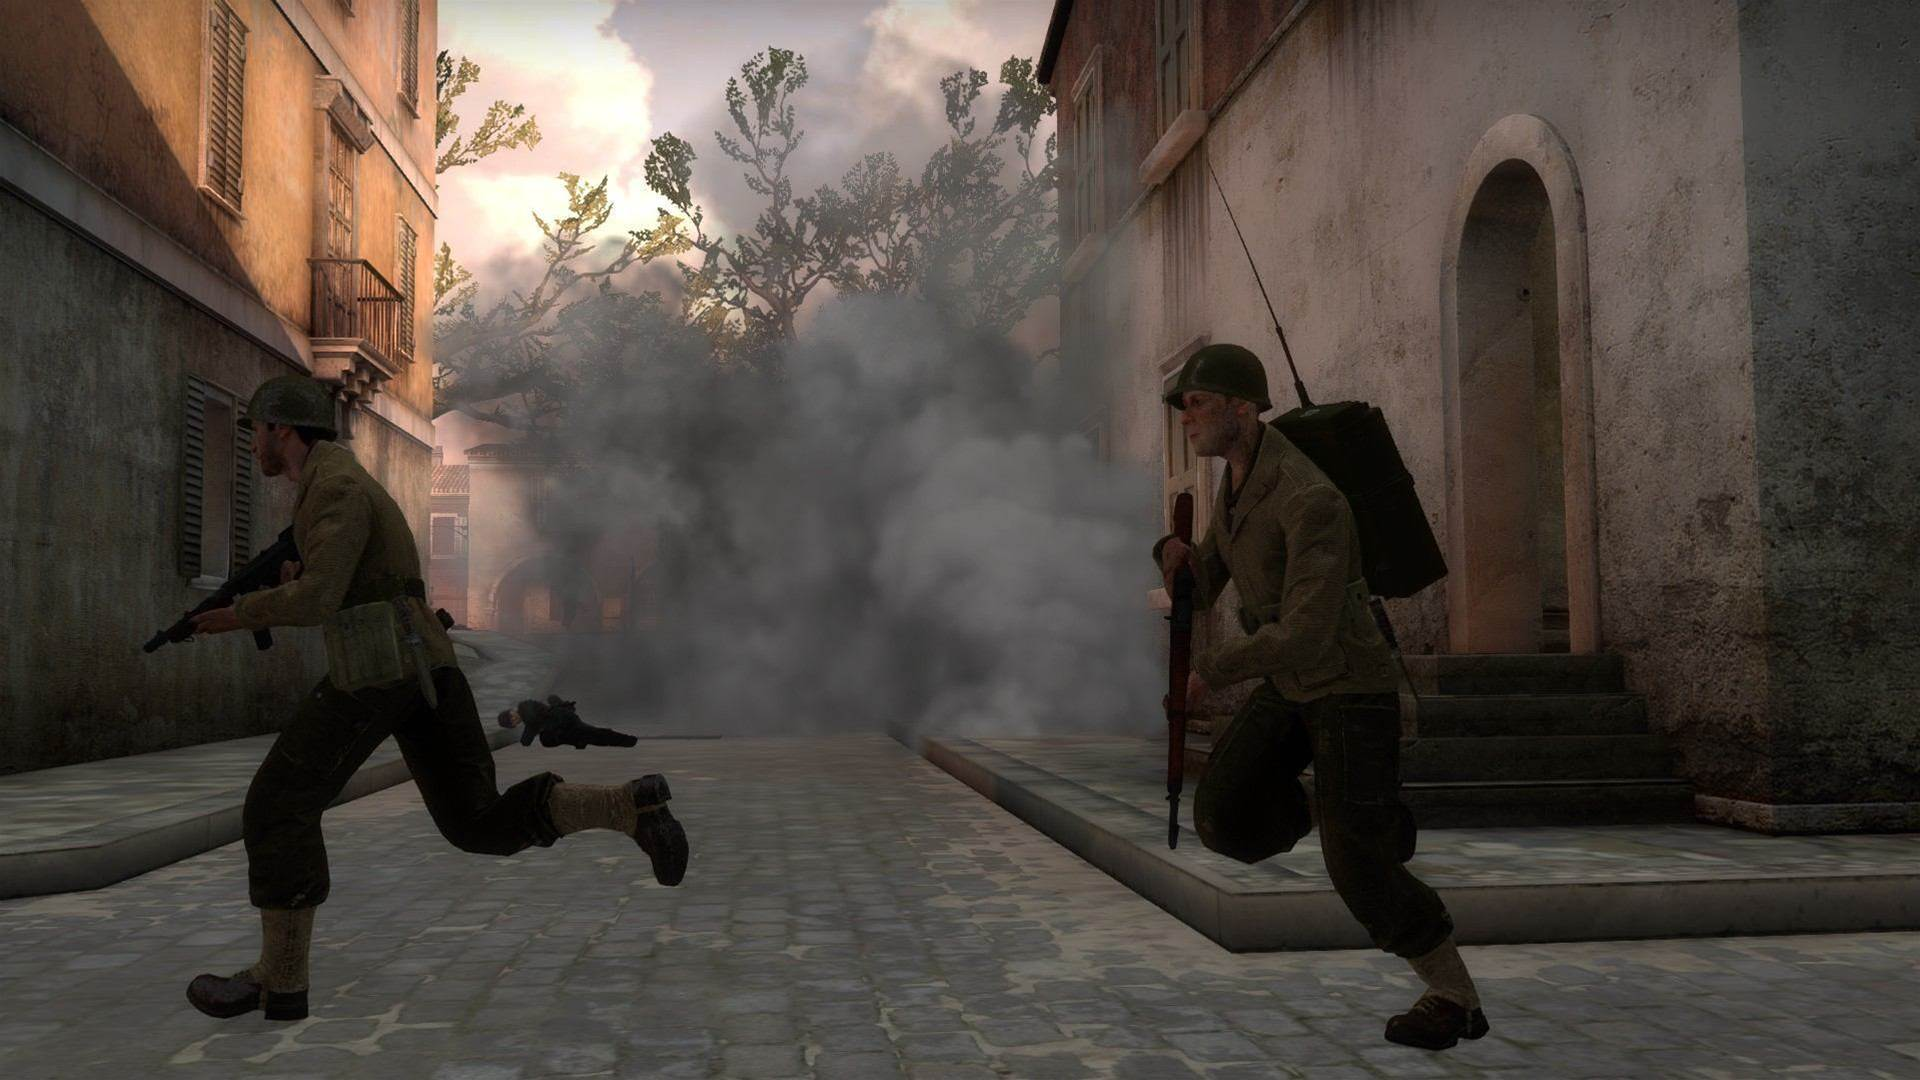 Some grim Day of Infamy screens